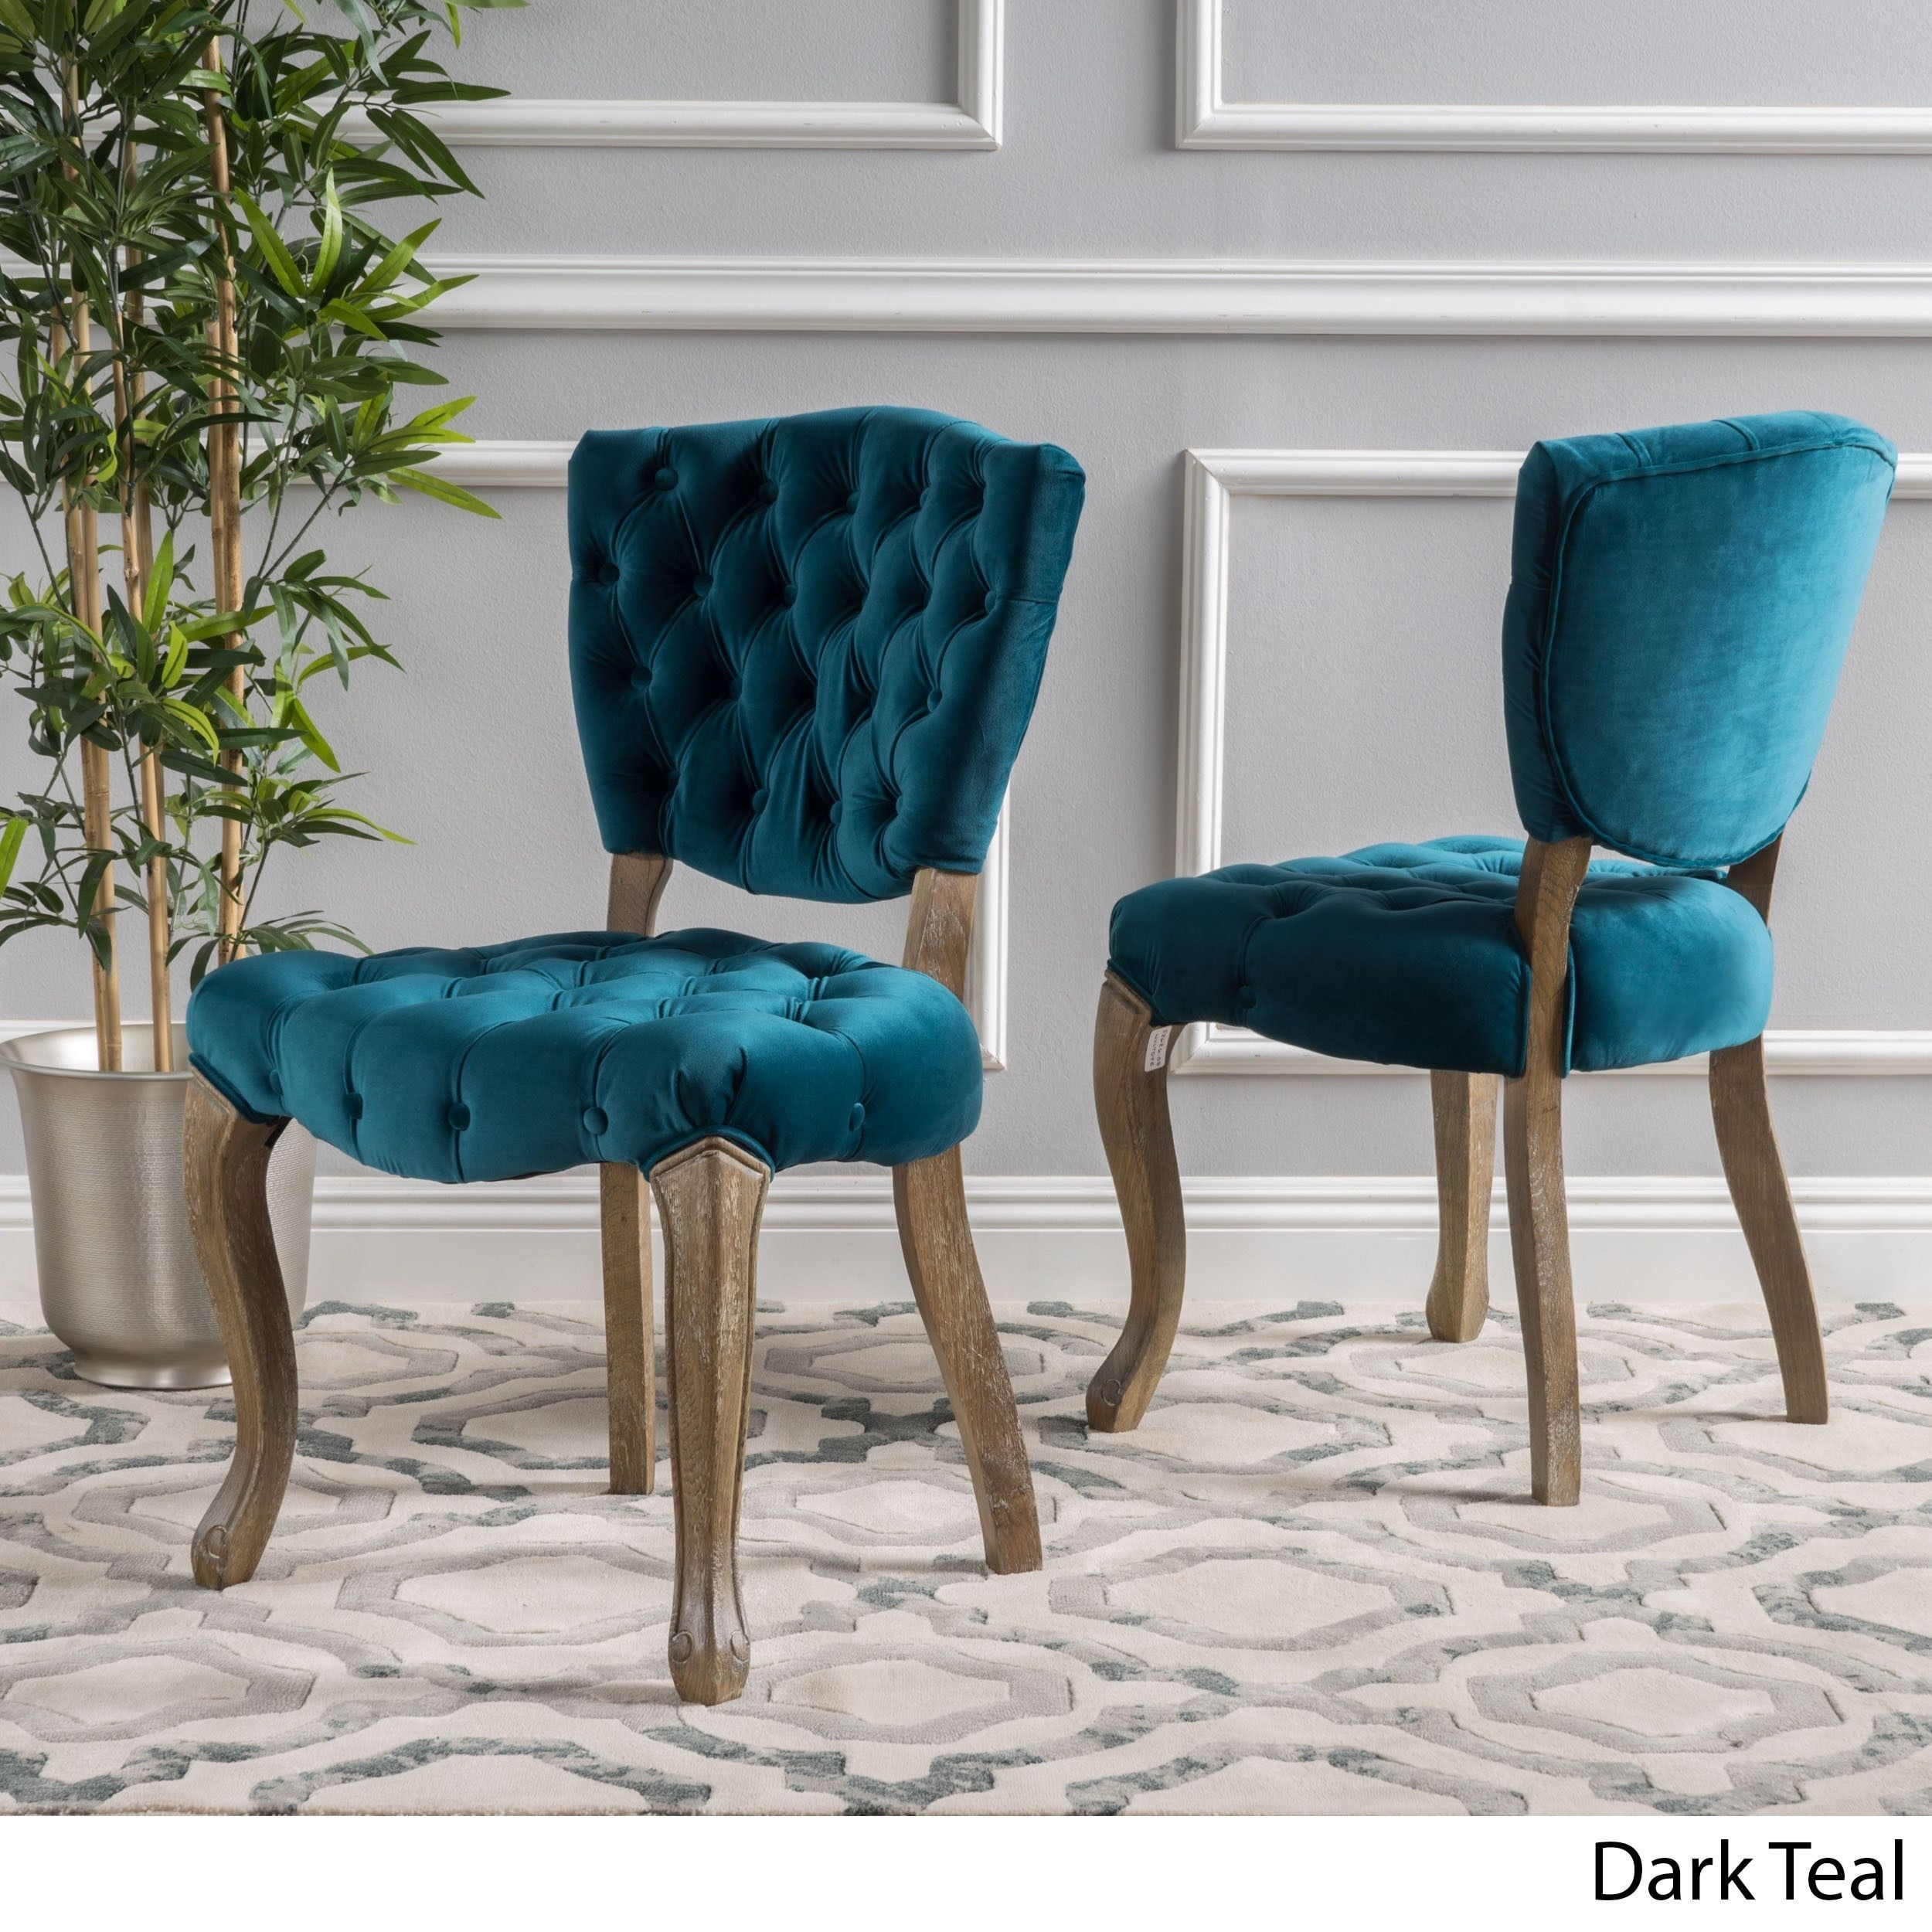 Christopher Knight Home Bates Tufted Dining Chairs Set of 2